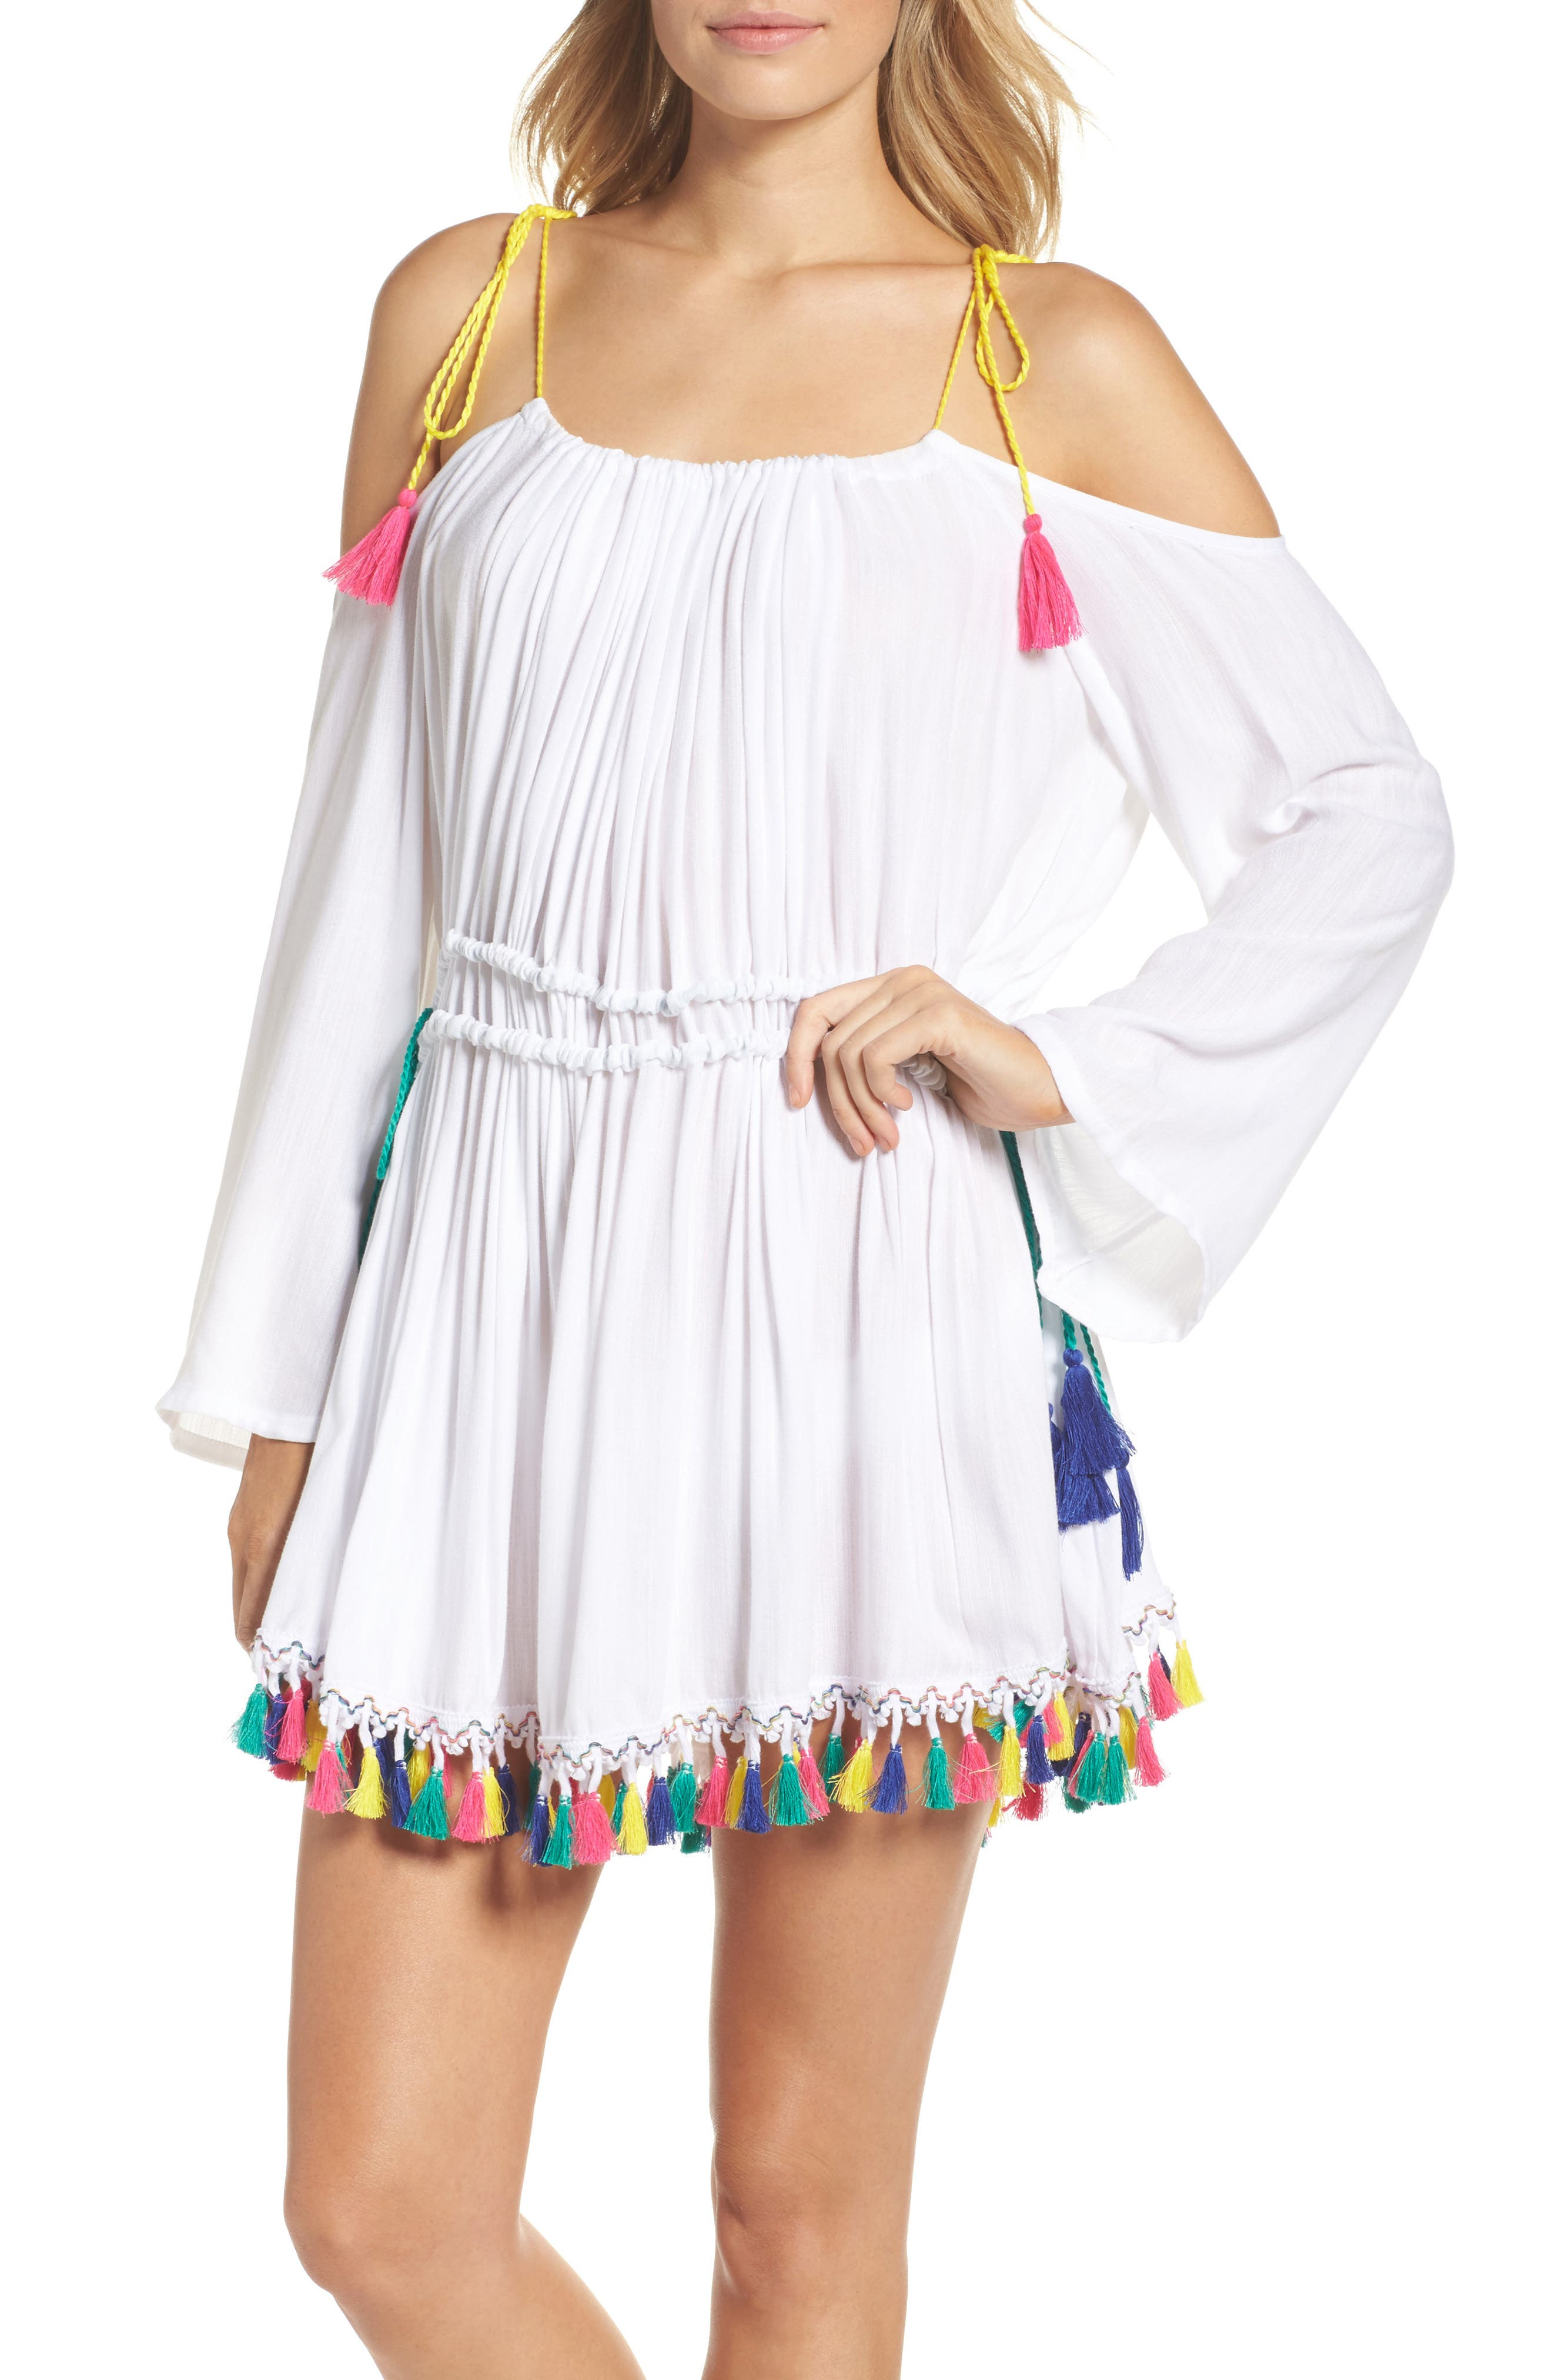 Fiesta Cover-Up Dress,                             Main thumbnail 1, color,                             White